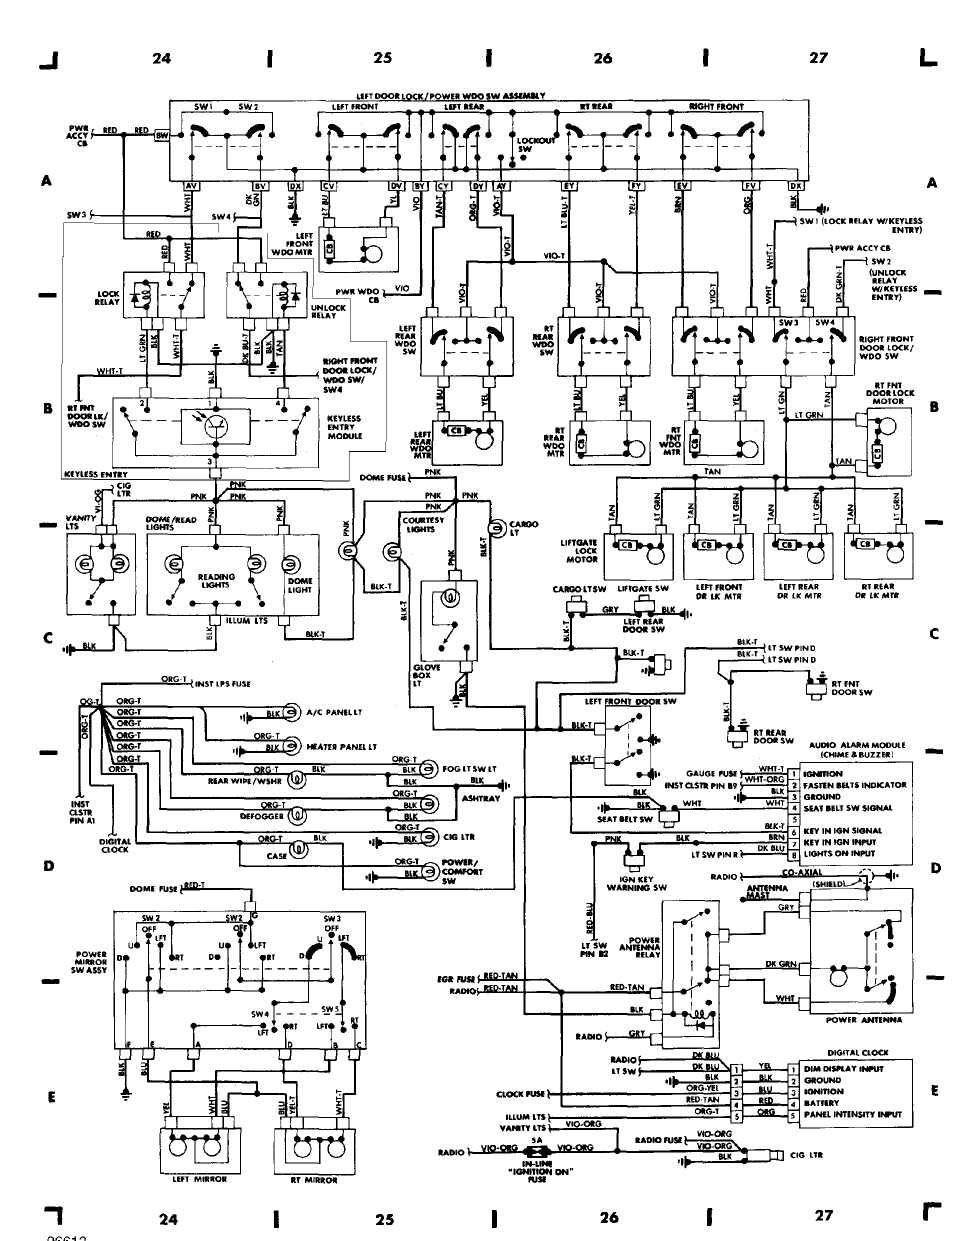 wiring_diagrams_html_61f5e0ad wiring diagrams 1984 1991 jeep cherokee (xj) jeep wiring diagram 2000 jeep cherokee at fashall.co